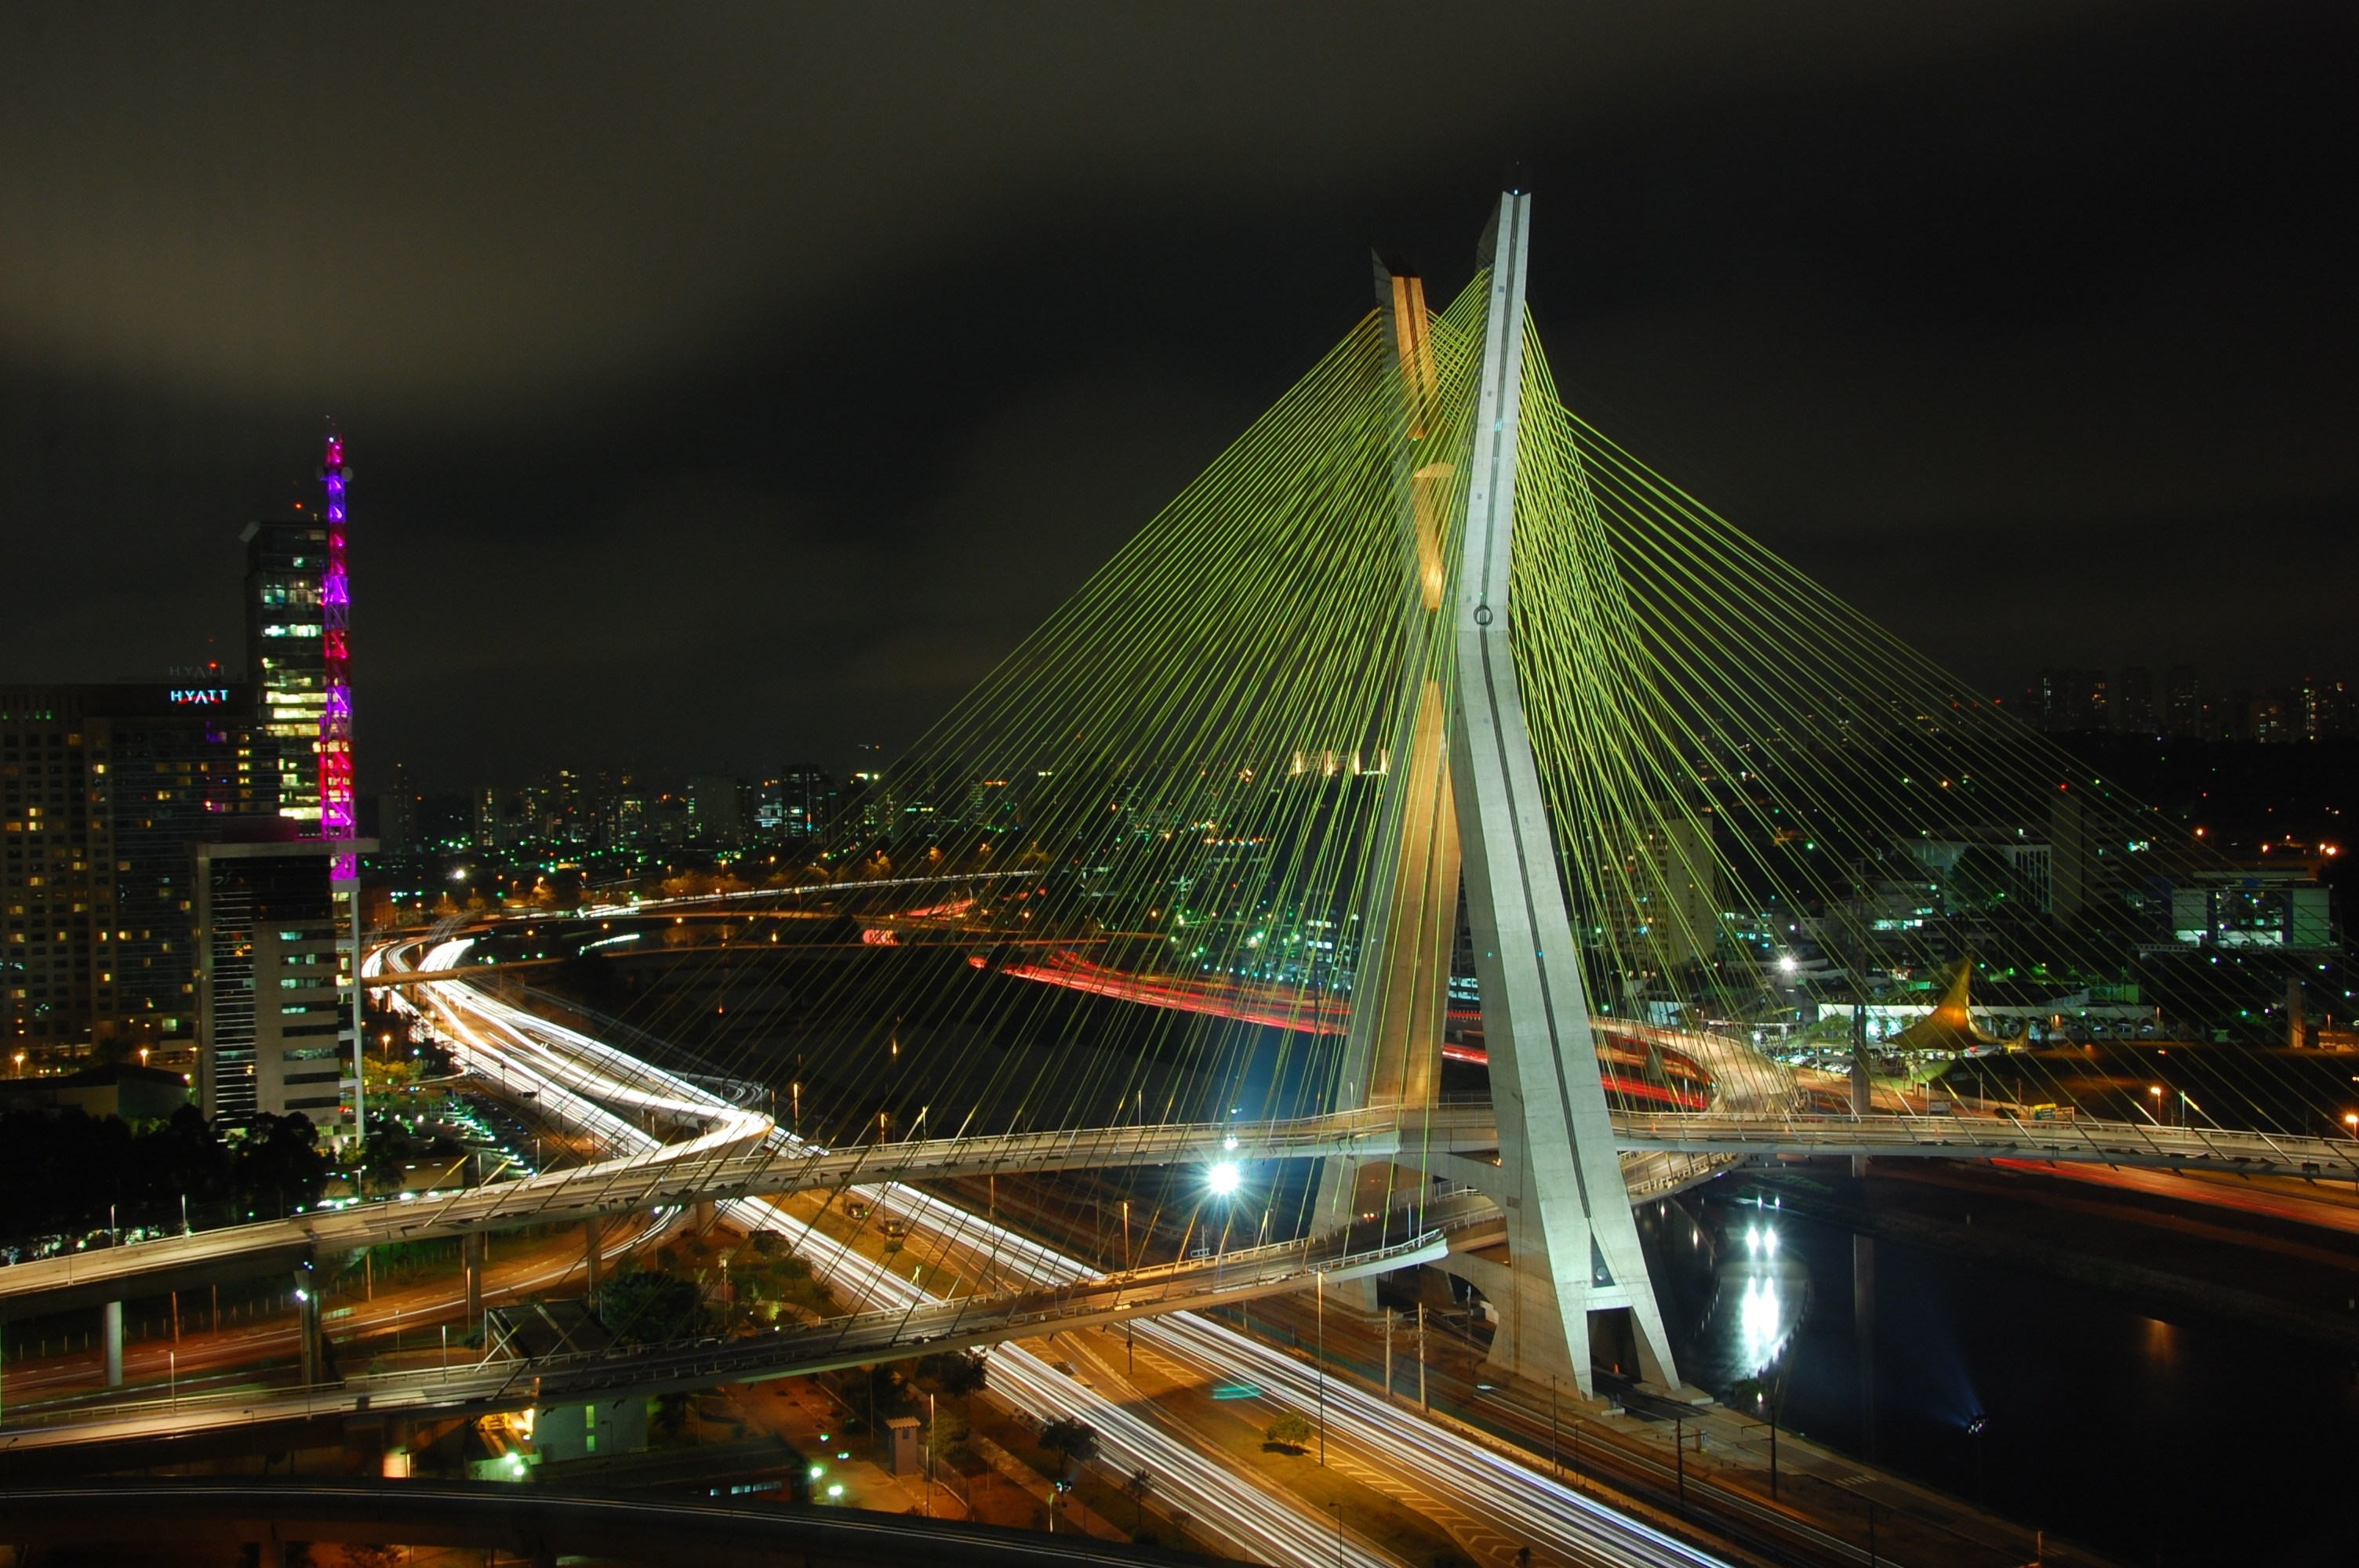 112362 download wallpaper Cities, Rivers, Bridges, City, Lights, Road, Brazil screensavers and pictures for free